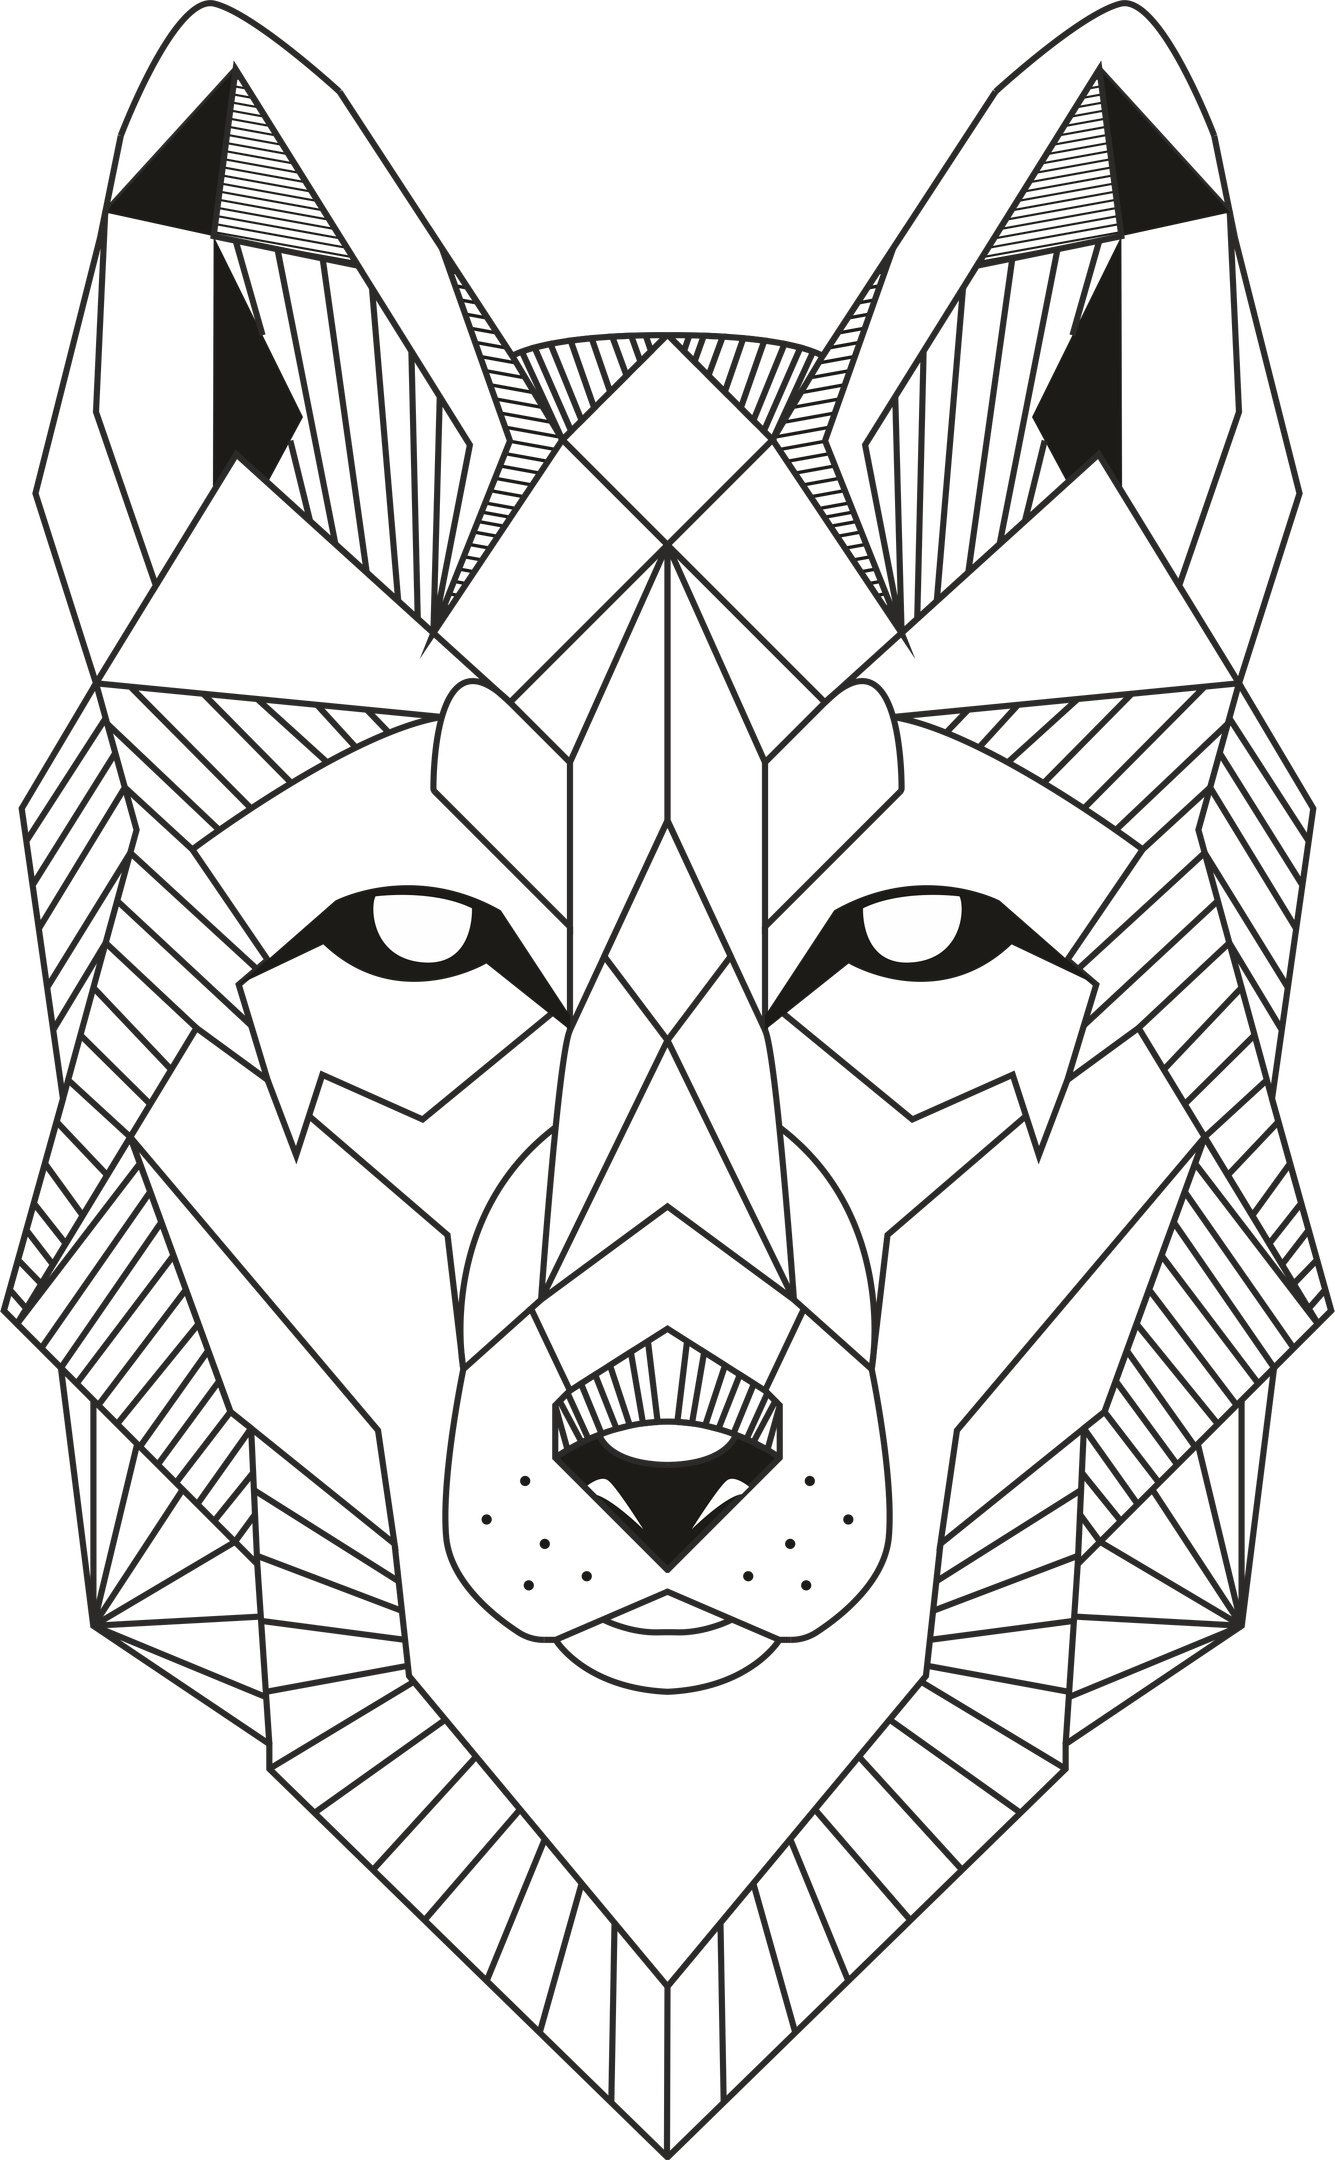 Wall Wolf Lineart Clipart panel DXF file for Laser Cut and CNC router, CDR, dxf files for cnc, laser cut files, vector cutting plan